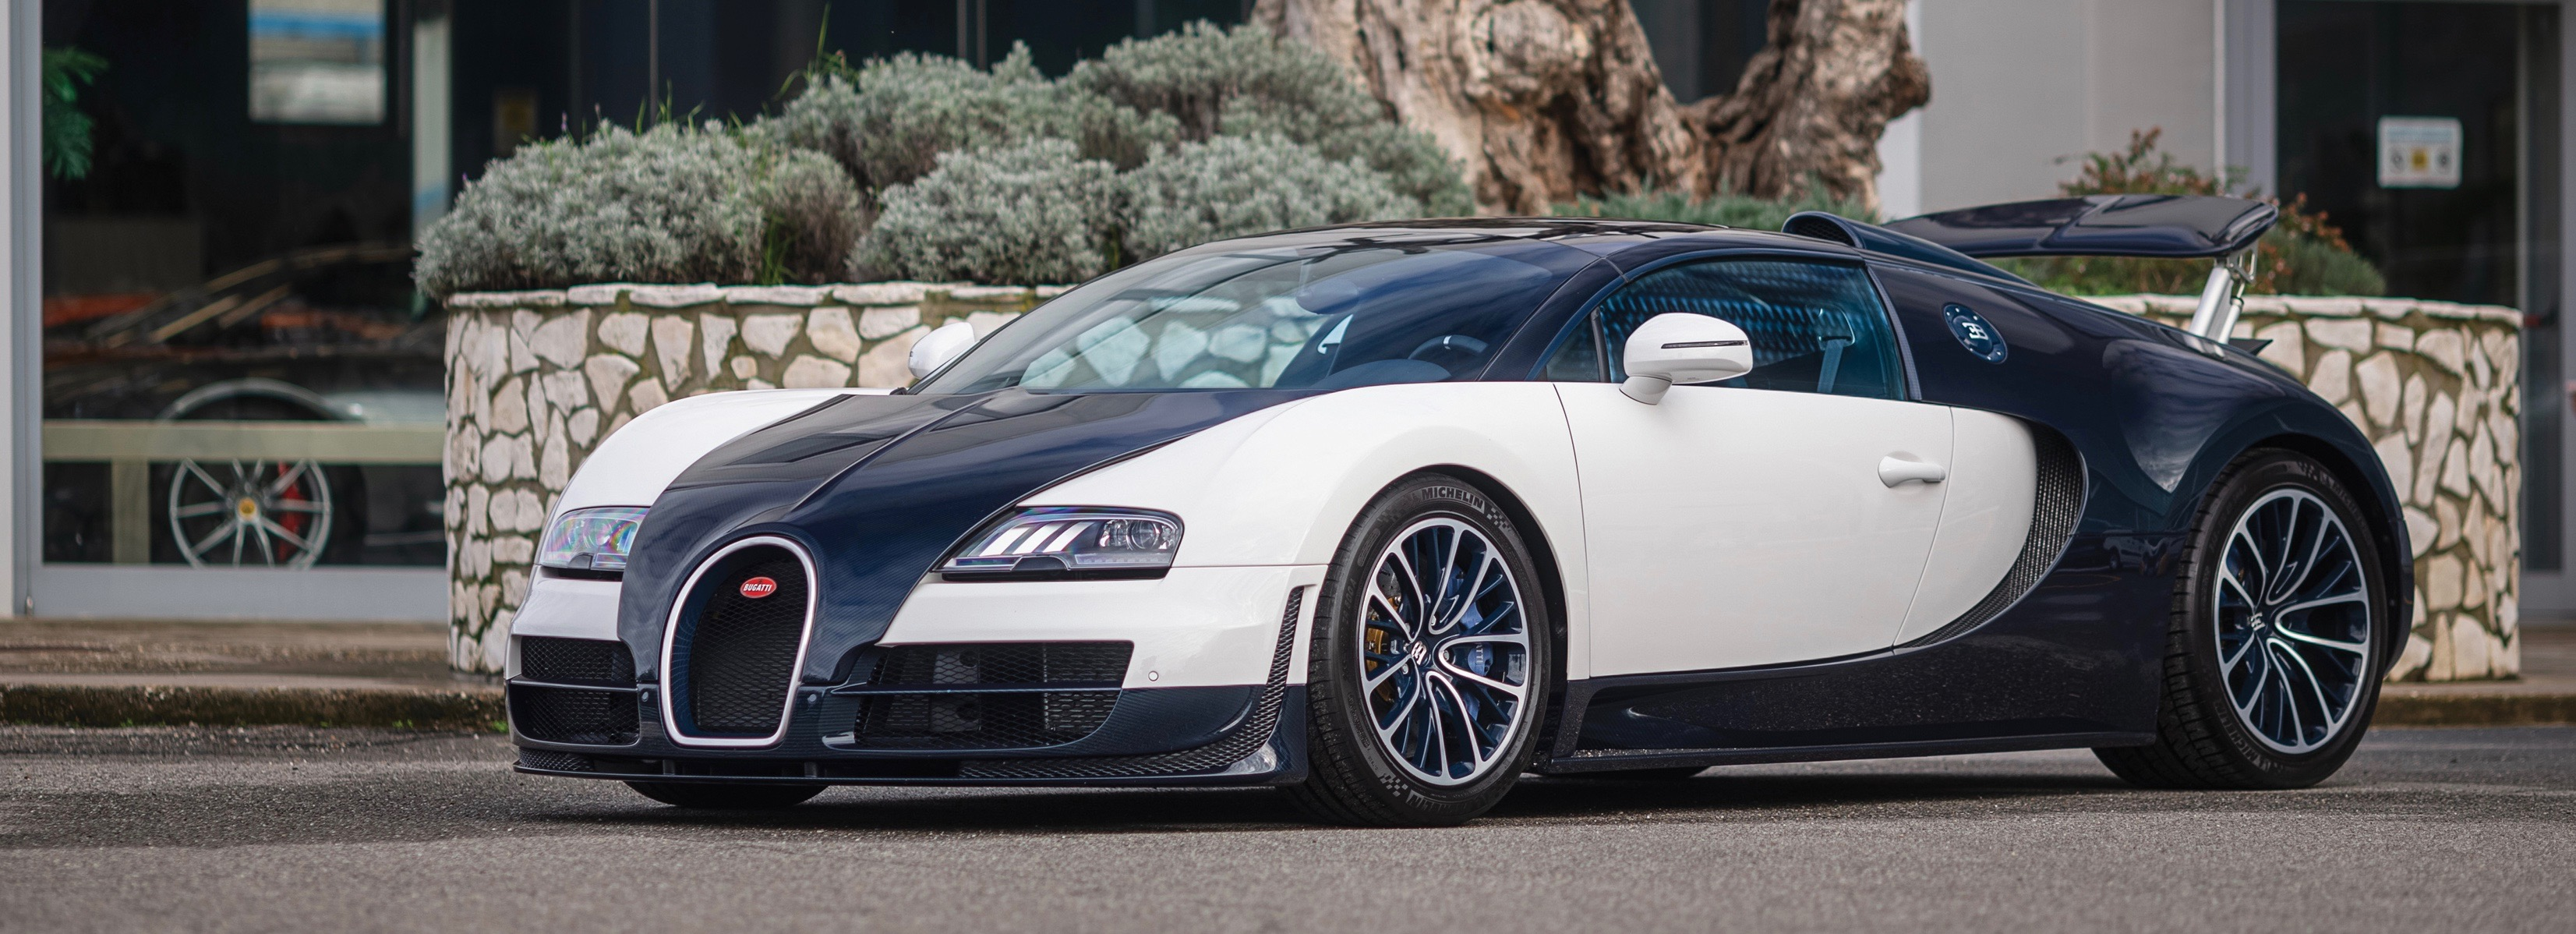 Supercars, RM Sotheby's adds supercars to Paris docket, ClassicCars.com Journal